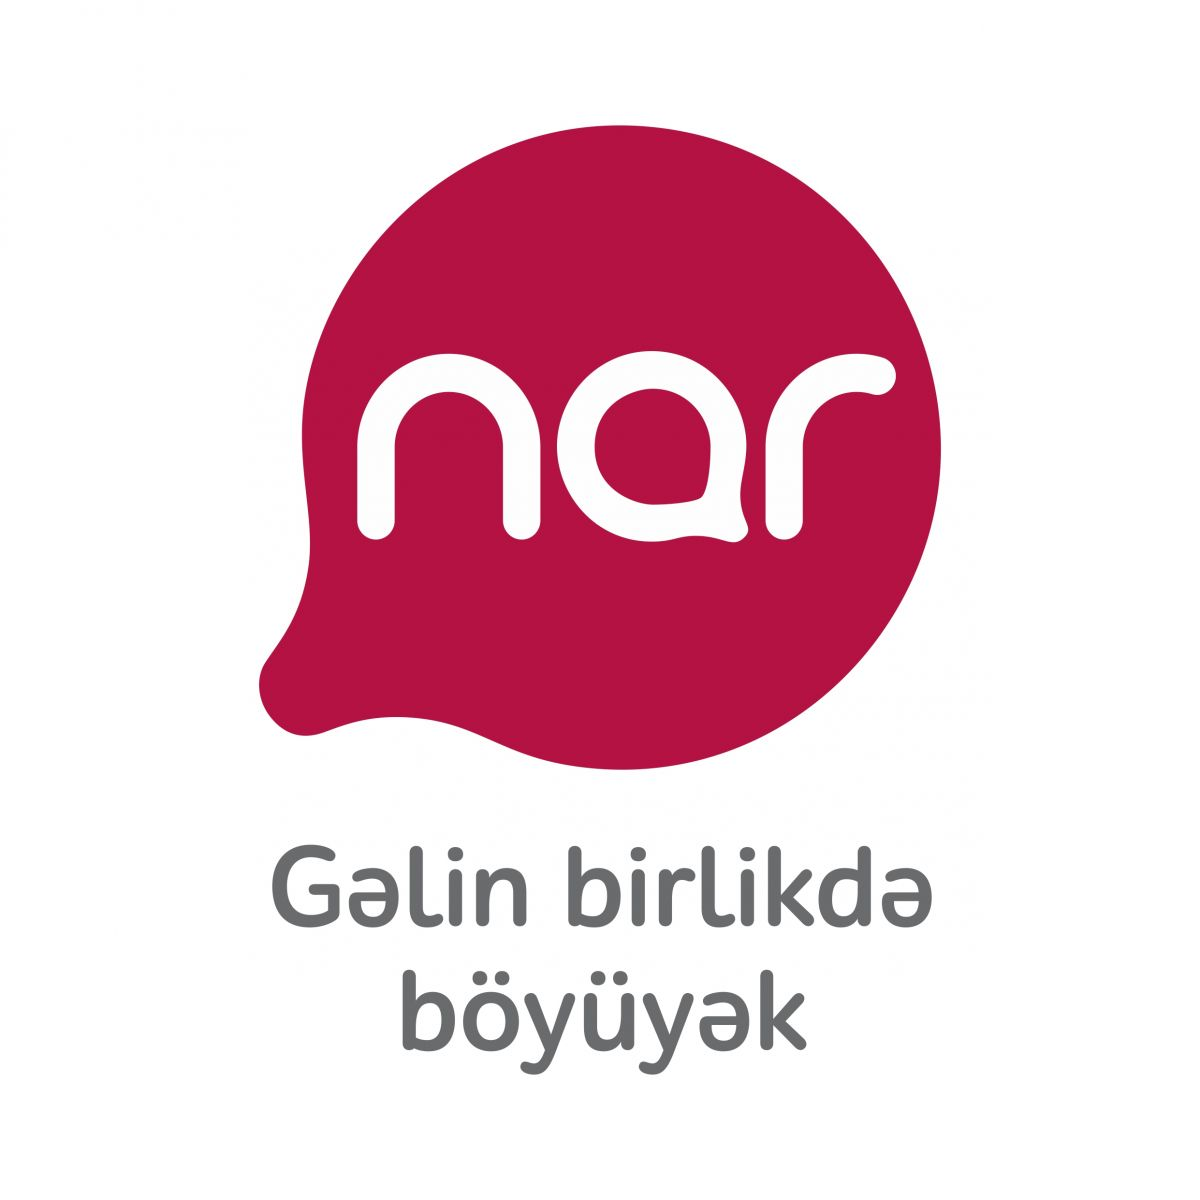 Photo: Nar, Azerbaijan's mobile orepator